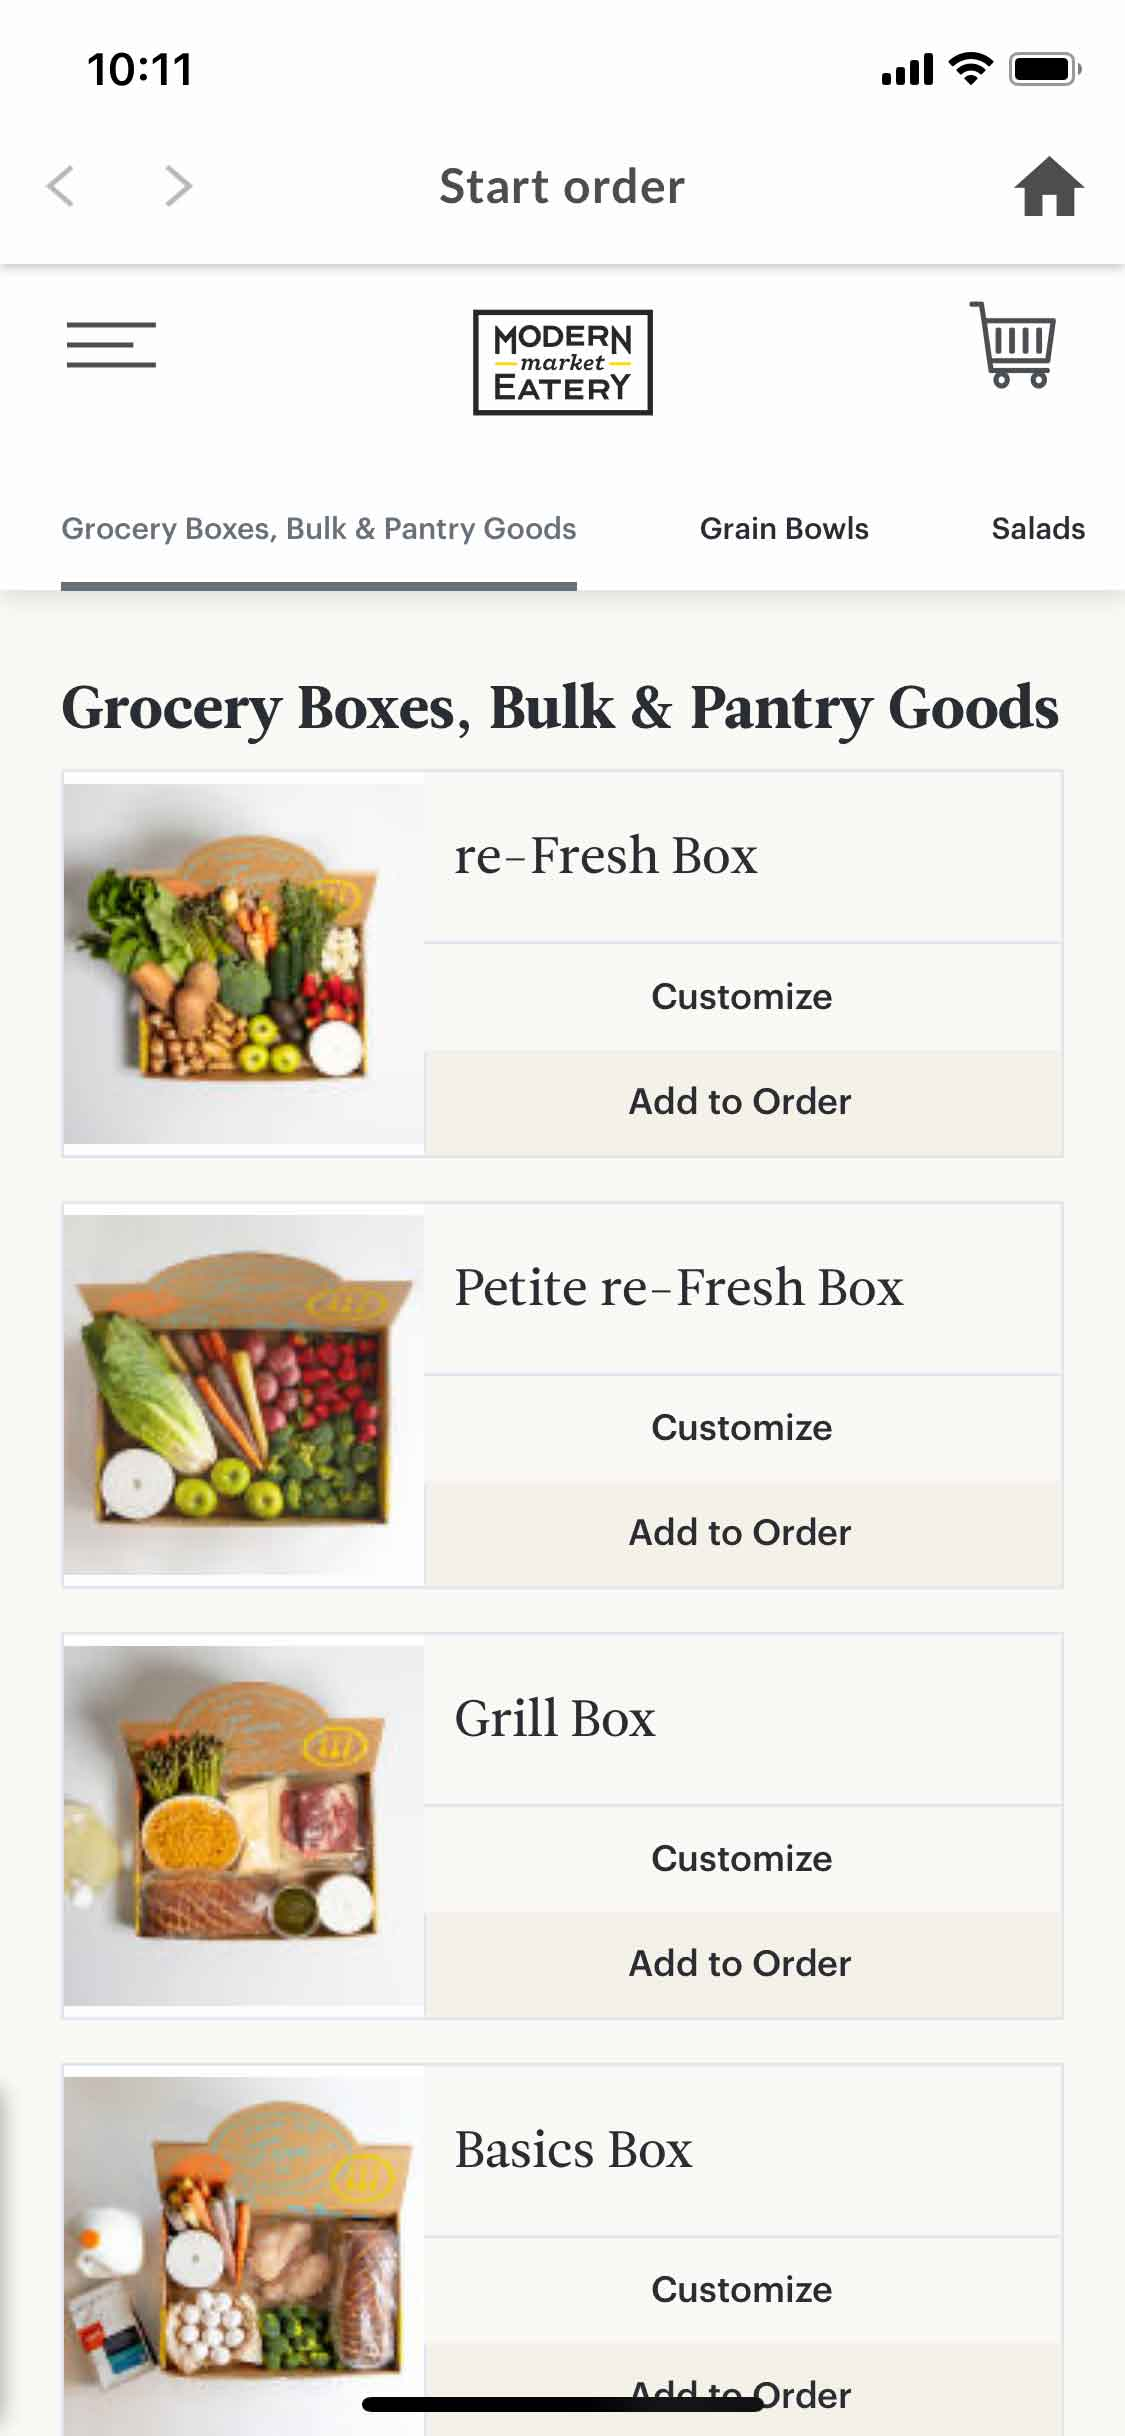 Modern Market: Grocery Boxes mobile app ordering